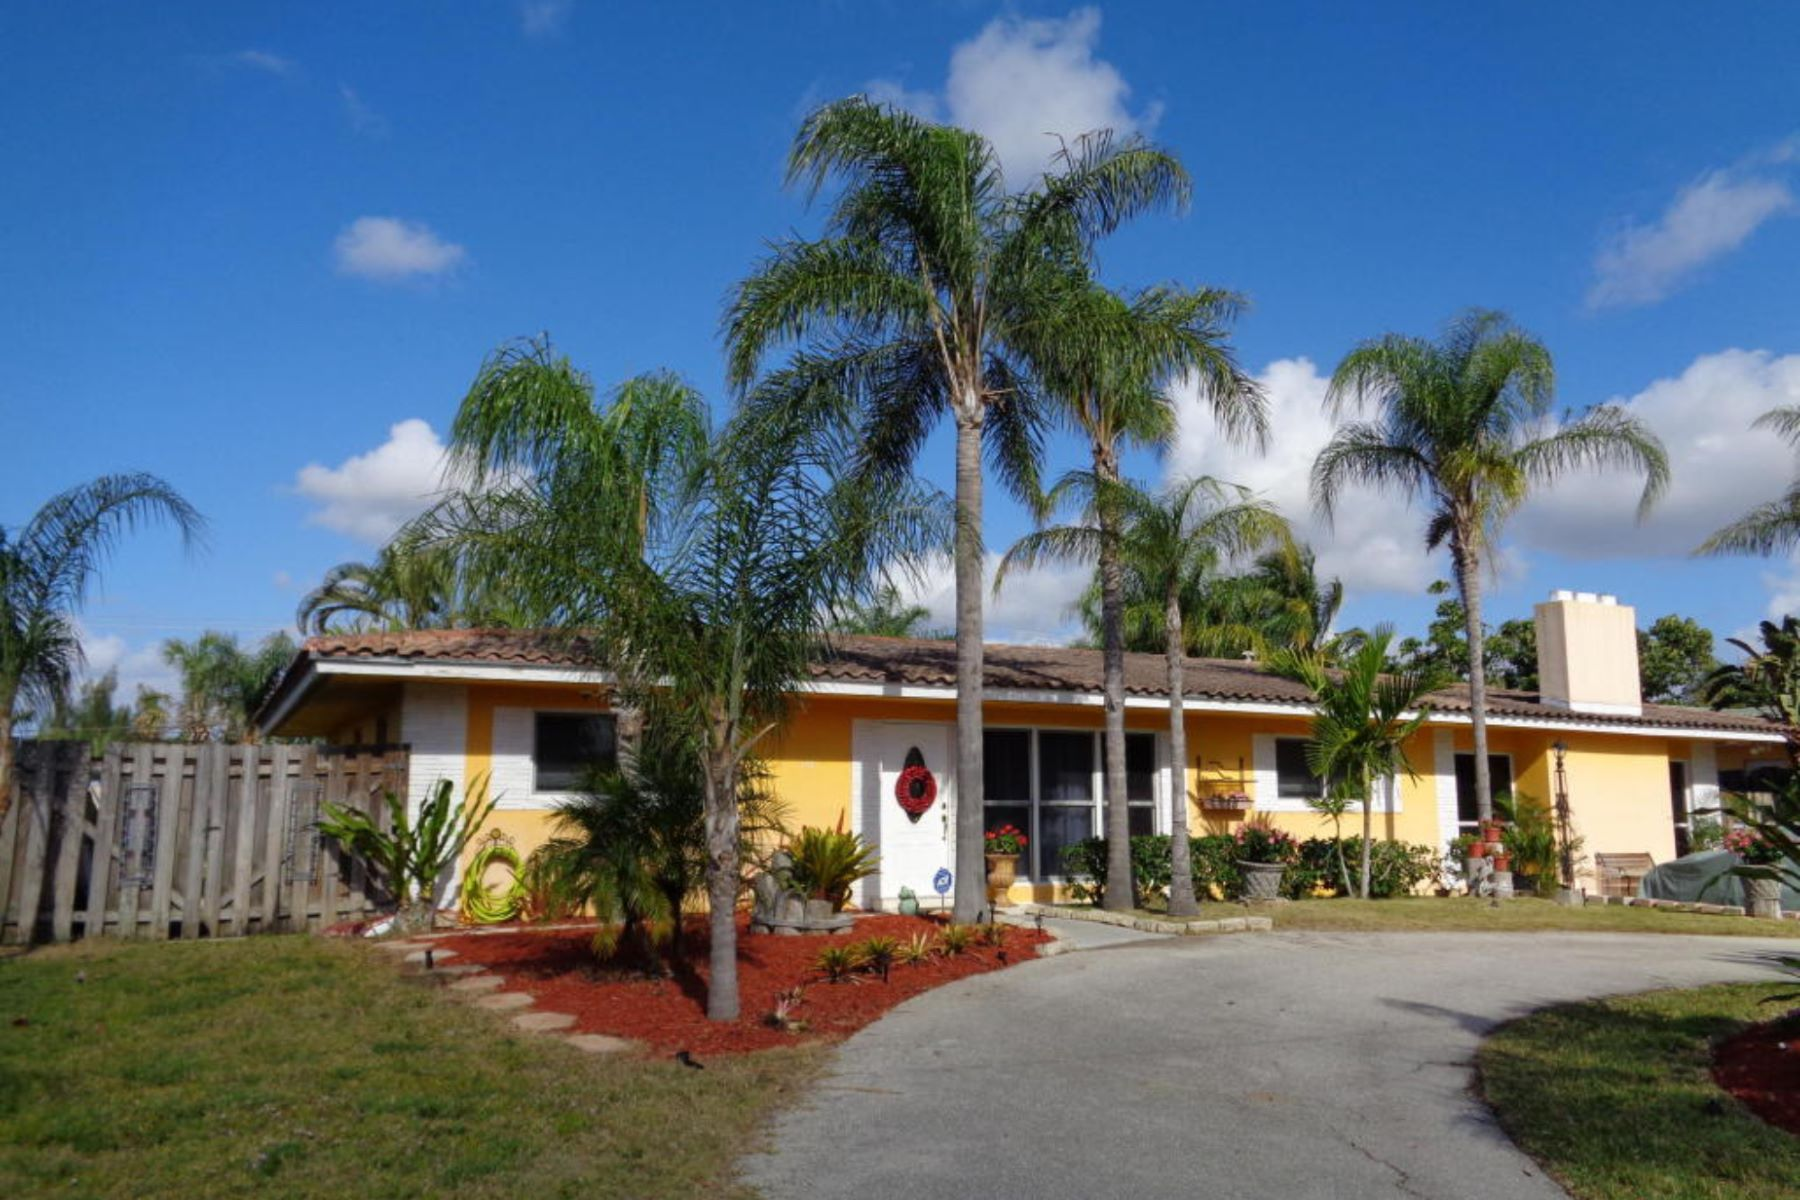 Single Family Home for Sale at Home in the Hills of Boca 775 NW 4th Ave Boca Raton, Florida 33432 United States